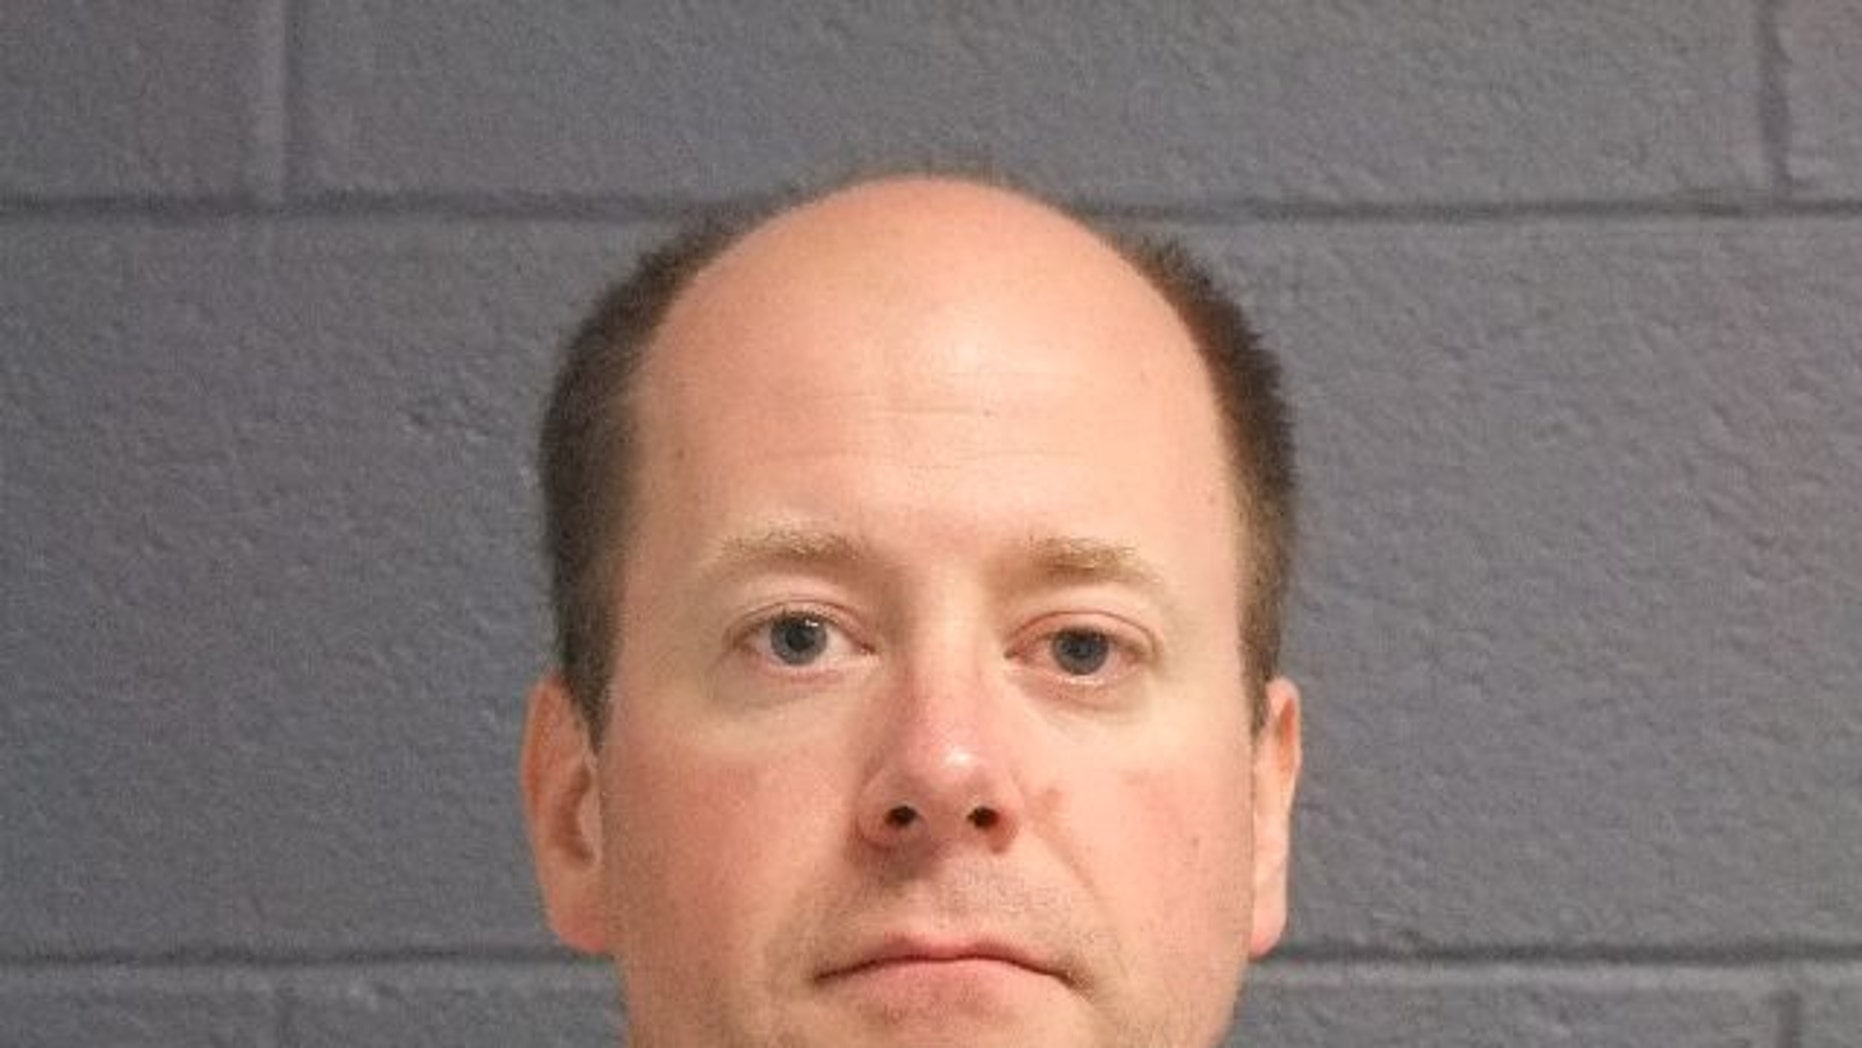 Neal Erickson is in prison for molesting a 14-year old boy while he was a teacher in the West Branch-Rose City, Mich., school district. Despite his conviction, his union representatives brought the school district into arbitration seeking a $10,000 severance package.